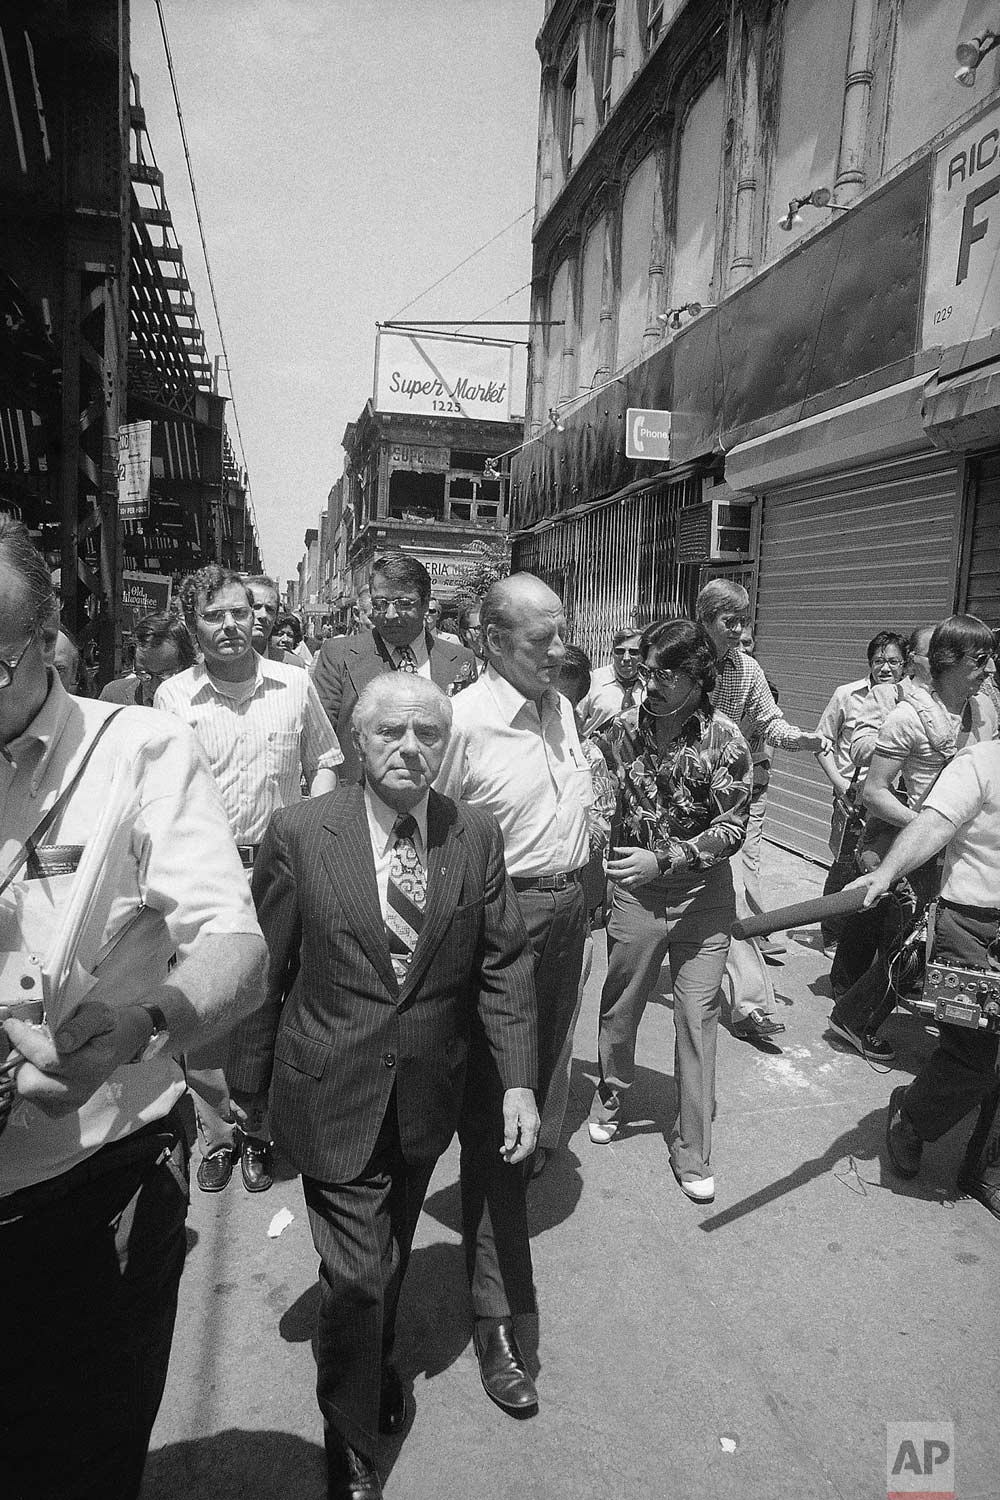 New York Mayor Abraham Beame, center, walks with shopkeepers and newsmen through looter-ravaged areas in New York's Bedford-Stuyvesant district on Friday, July 15, 1977. The area was one of the hardest hit by looters during Wednesday and Thursday's power outage in metropolitan New York City. (AP Photo)